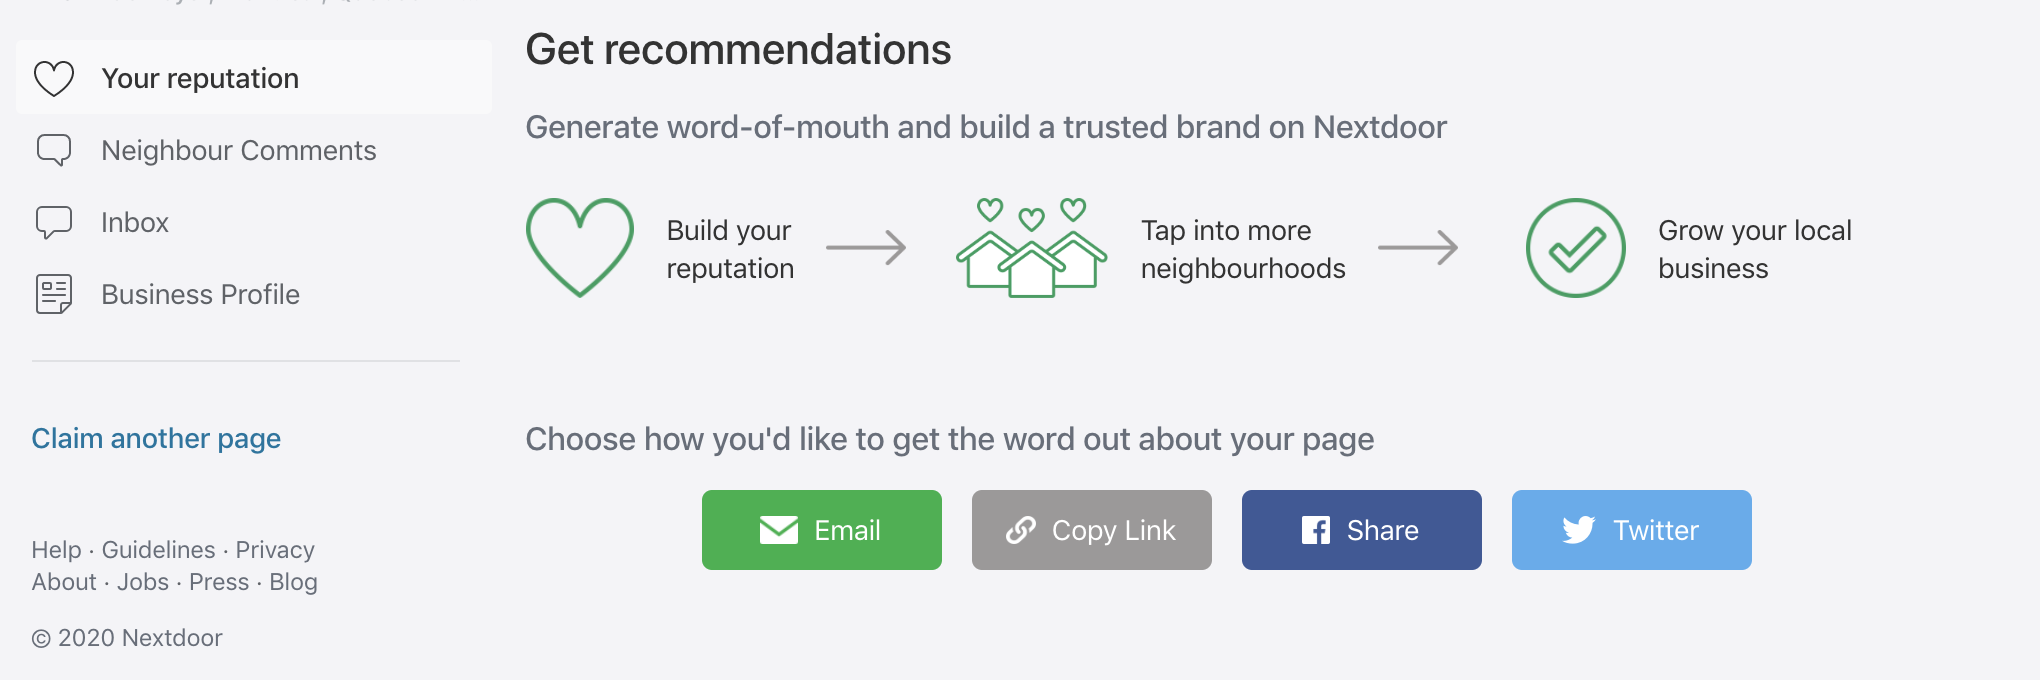 """""""Your reputation"""" tab in Nextdoor for Business with prompt to """"Get recommendations"""" via email, copy link, Facebook share, or Twitter"""